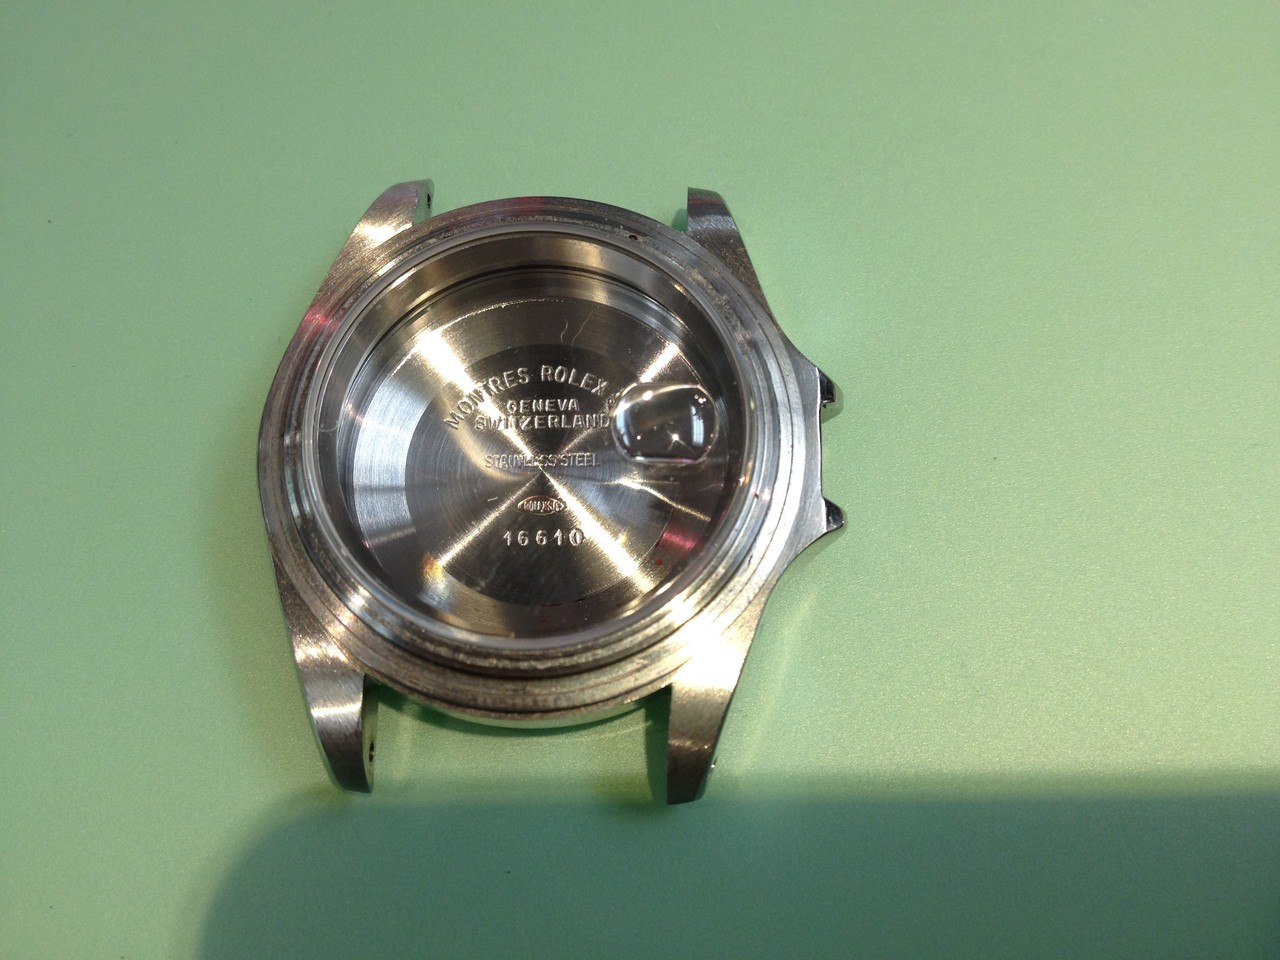 YOU CAN NOW BUY OEM SUBMARINER PARTS ! ! ! - THE WATCH SHOP